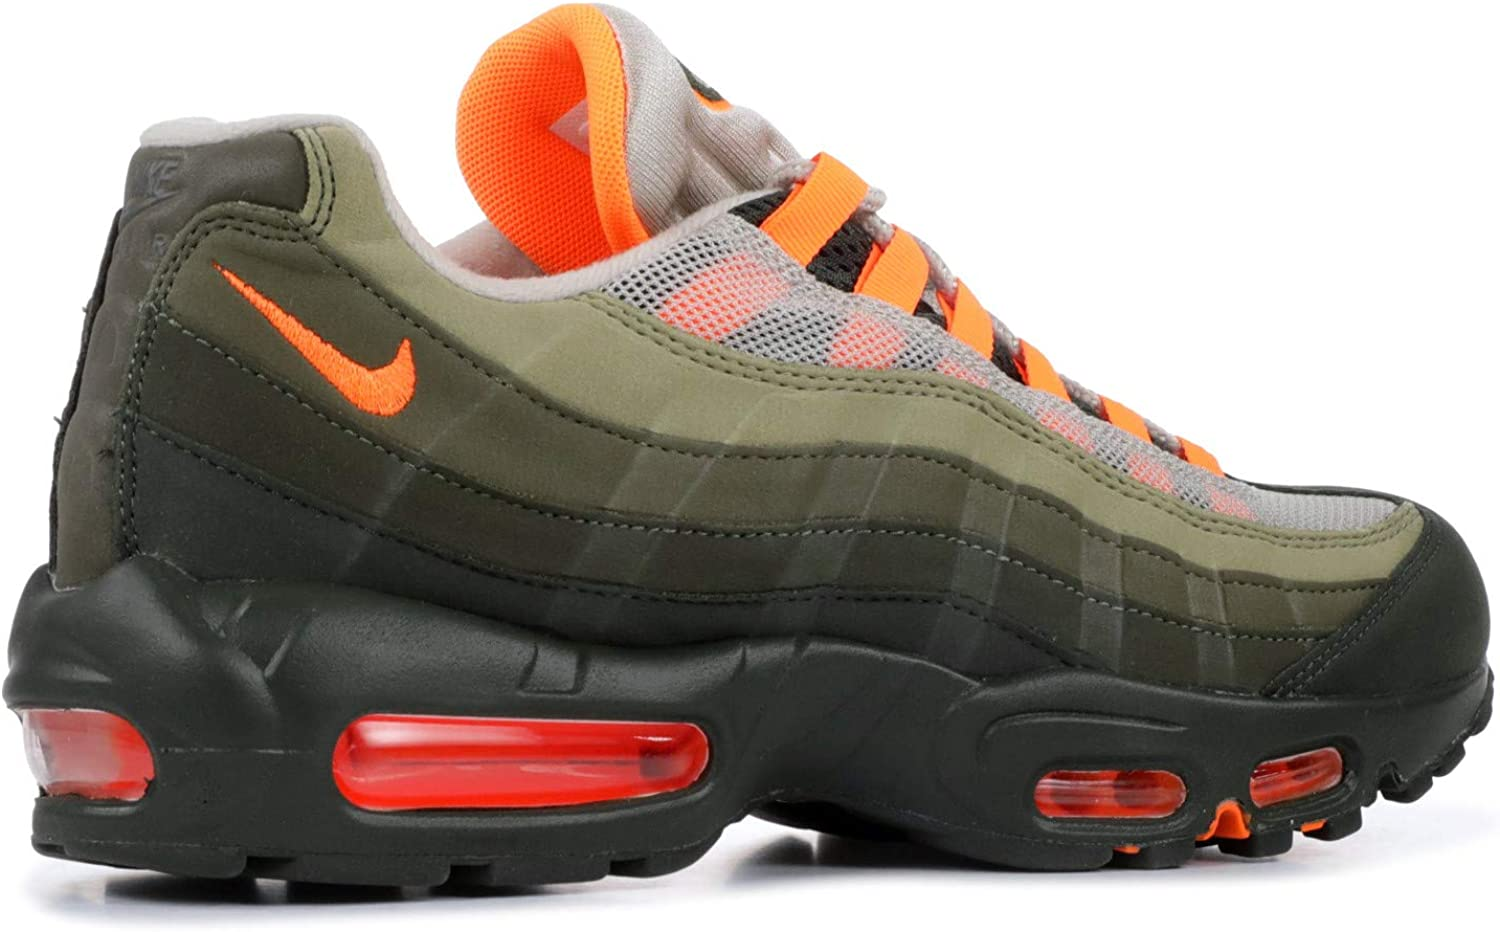 NIKE AIR MAX 95 OG 'Neutral Olive' Mens Sneakers AT2865 200